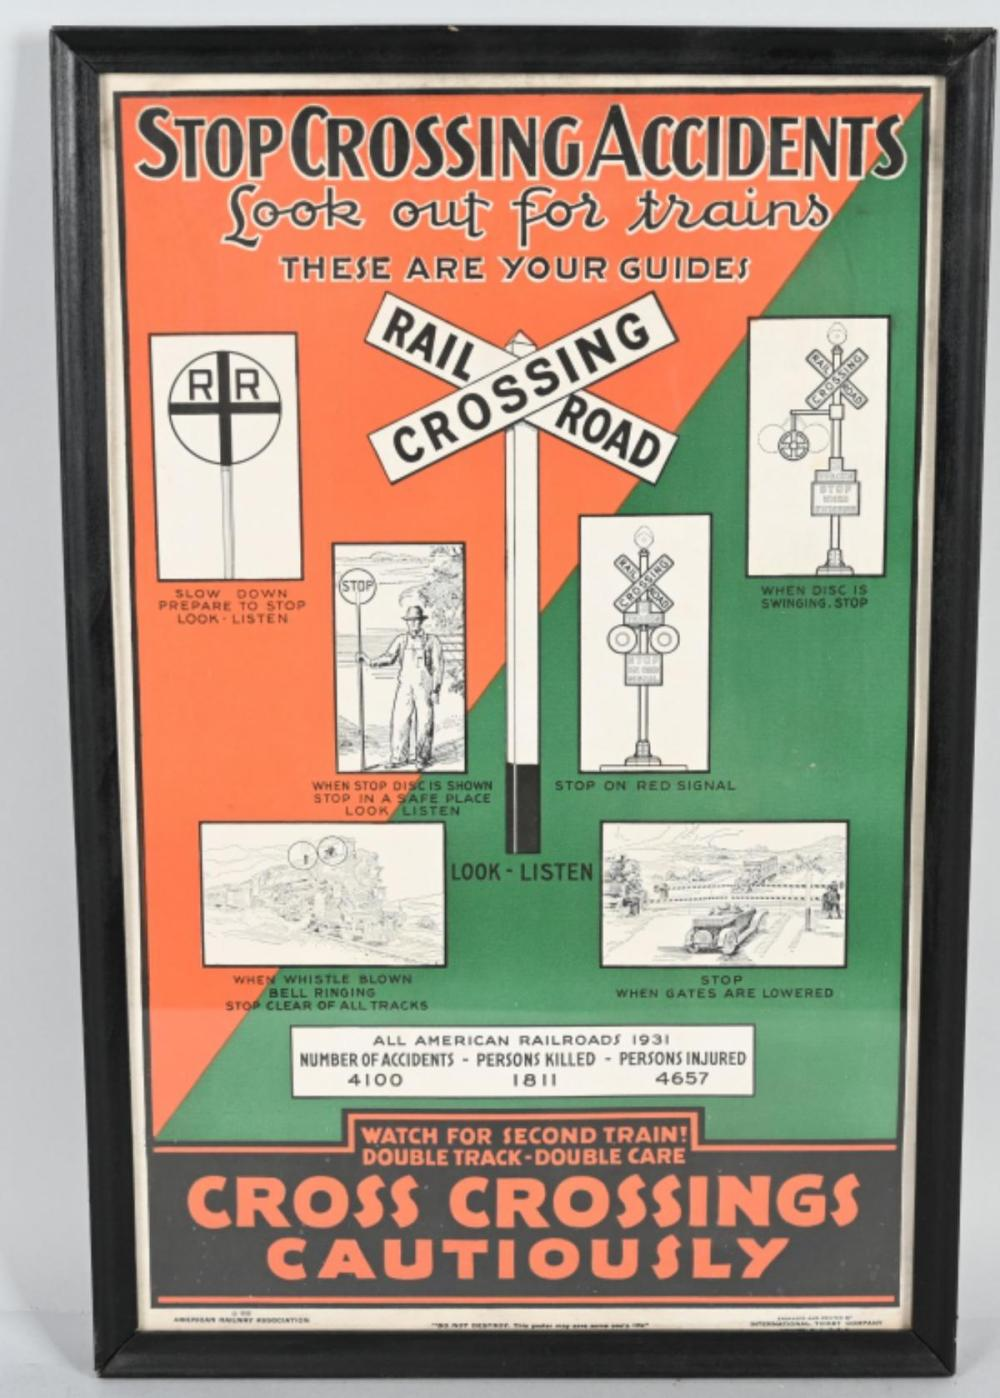 1932 Cross Crossing Cautiously Poster